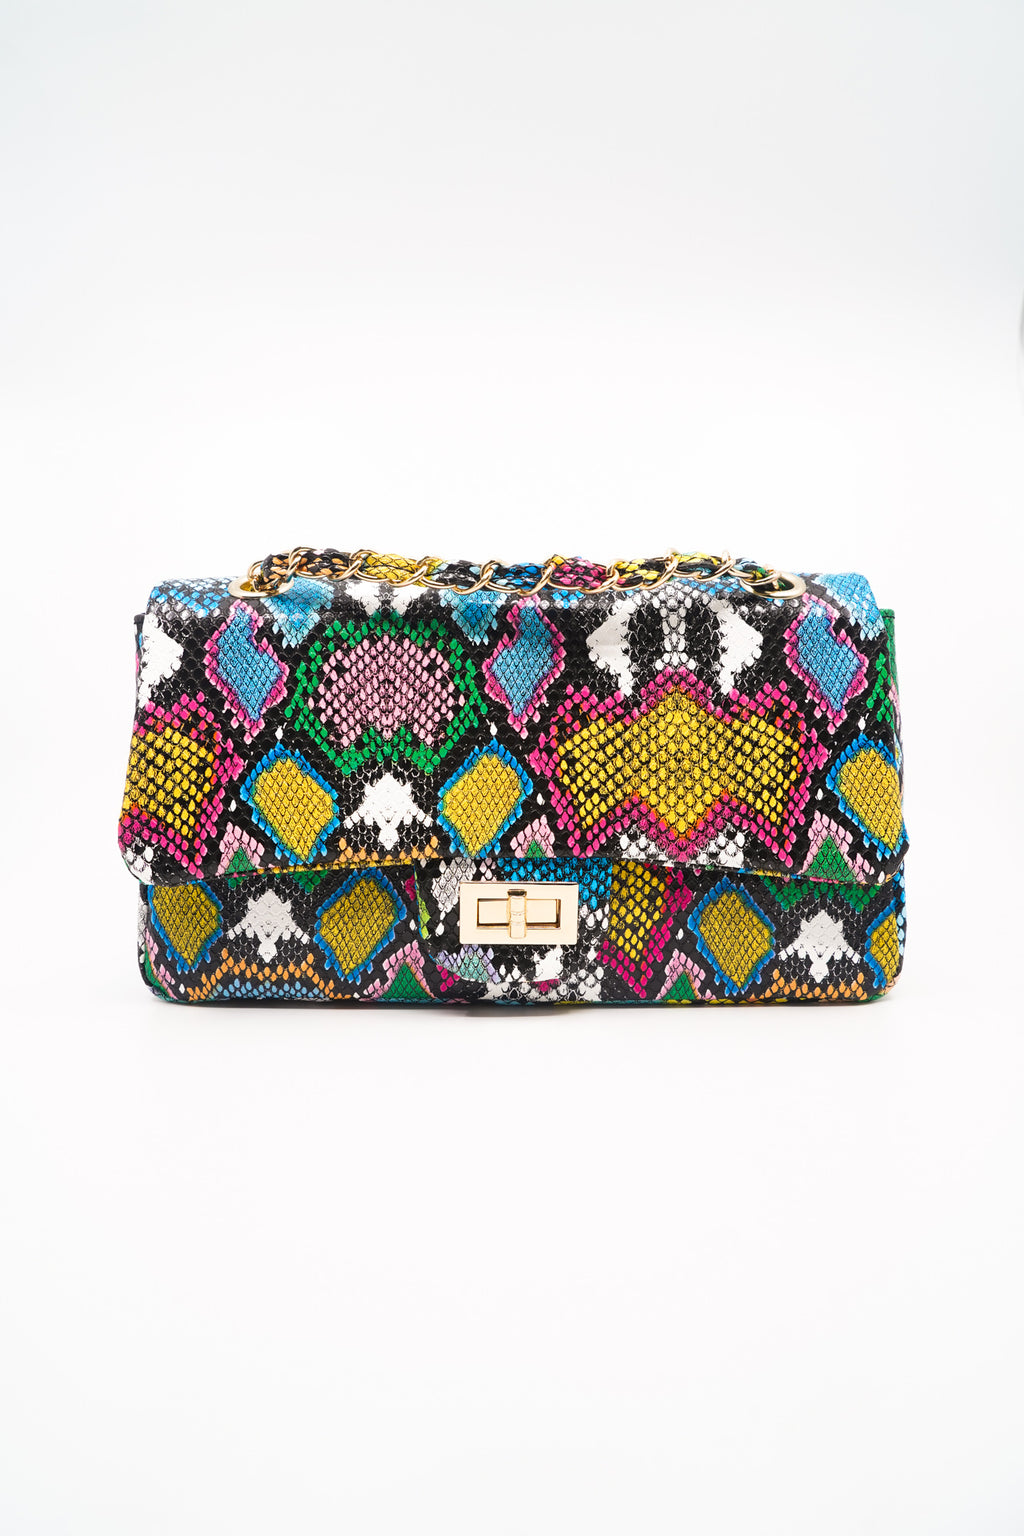 Multi Color Snakeskin Shoulder Bag - Fashion House USA